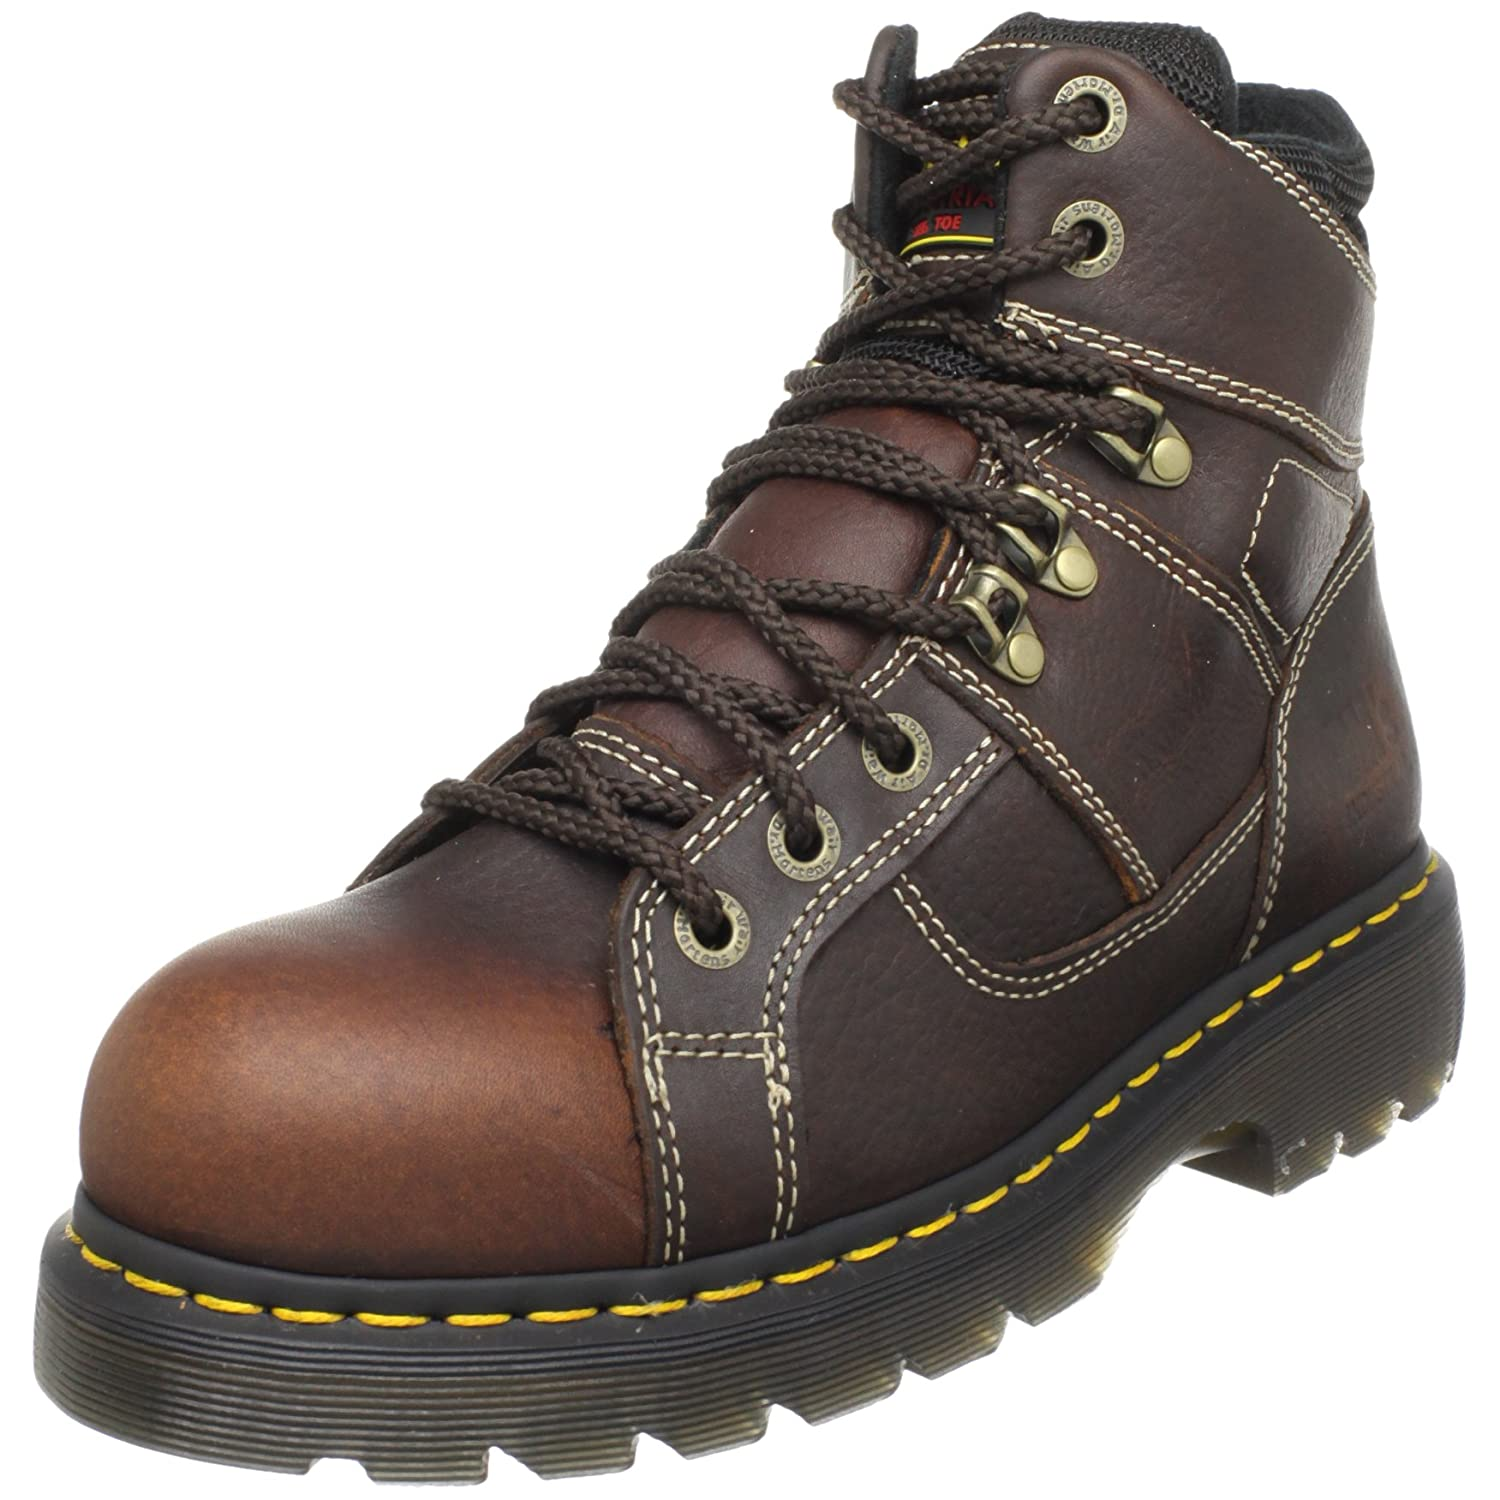 Dr. Martens Ironbridge Safety Toe Boot B001EXZLNS 9 UK/11 M US Women's/10 M US Men's|Teak